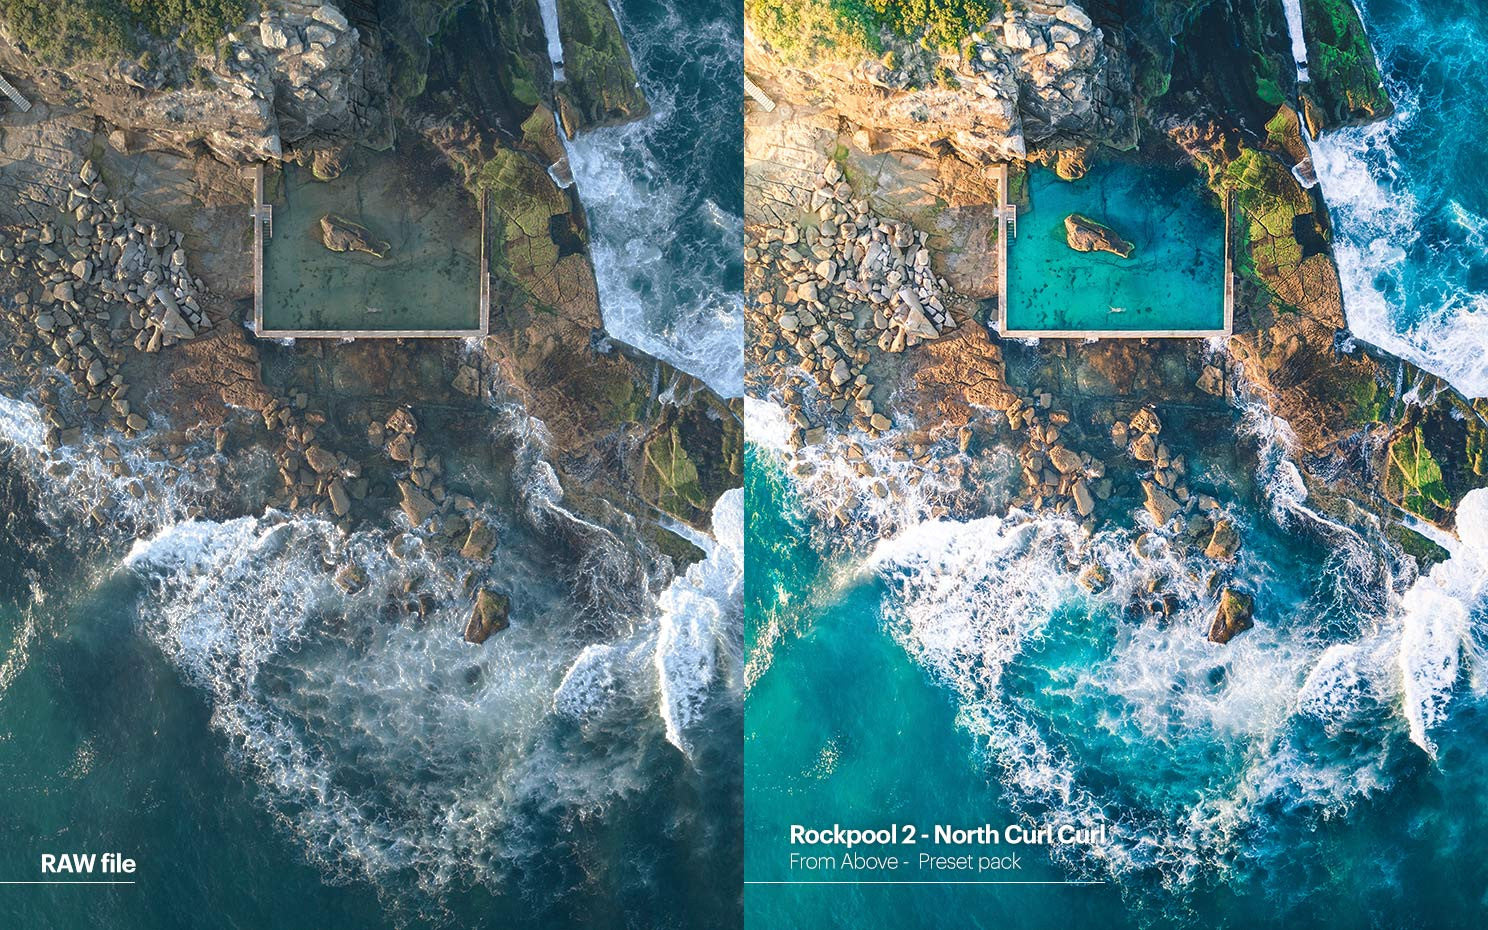 Pat Kay presets - From Above - Rockpool 2 - North Curl Curl